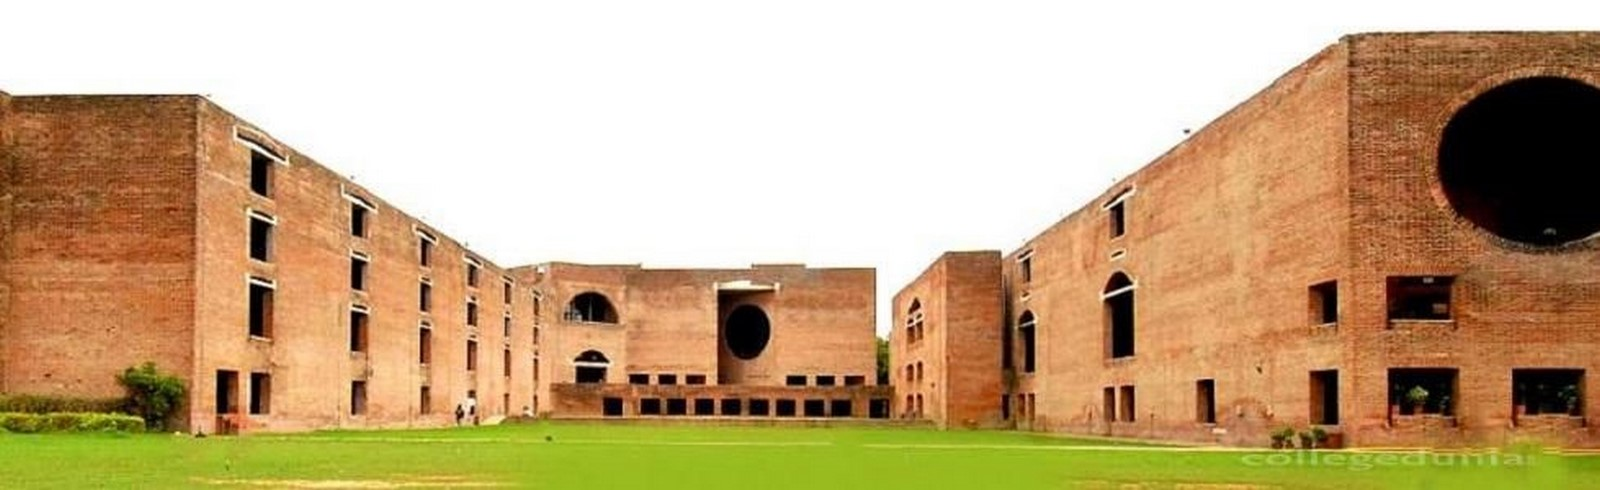 Revisiting the past: Indian independence and Architecture - Sheet7